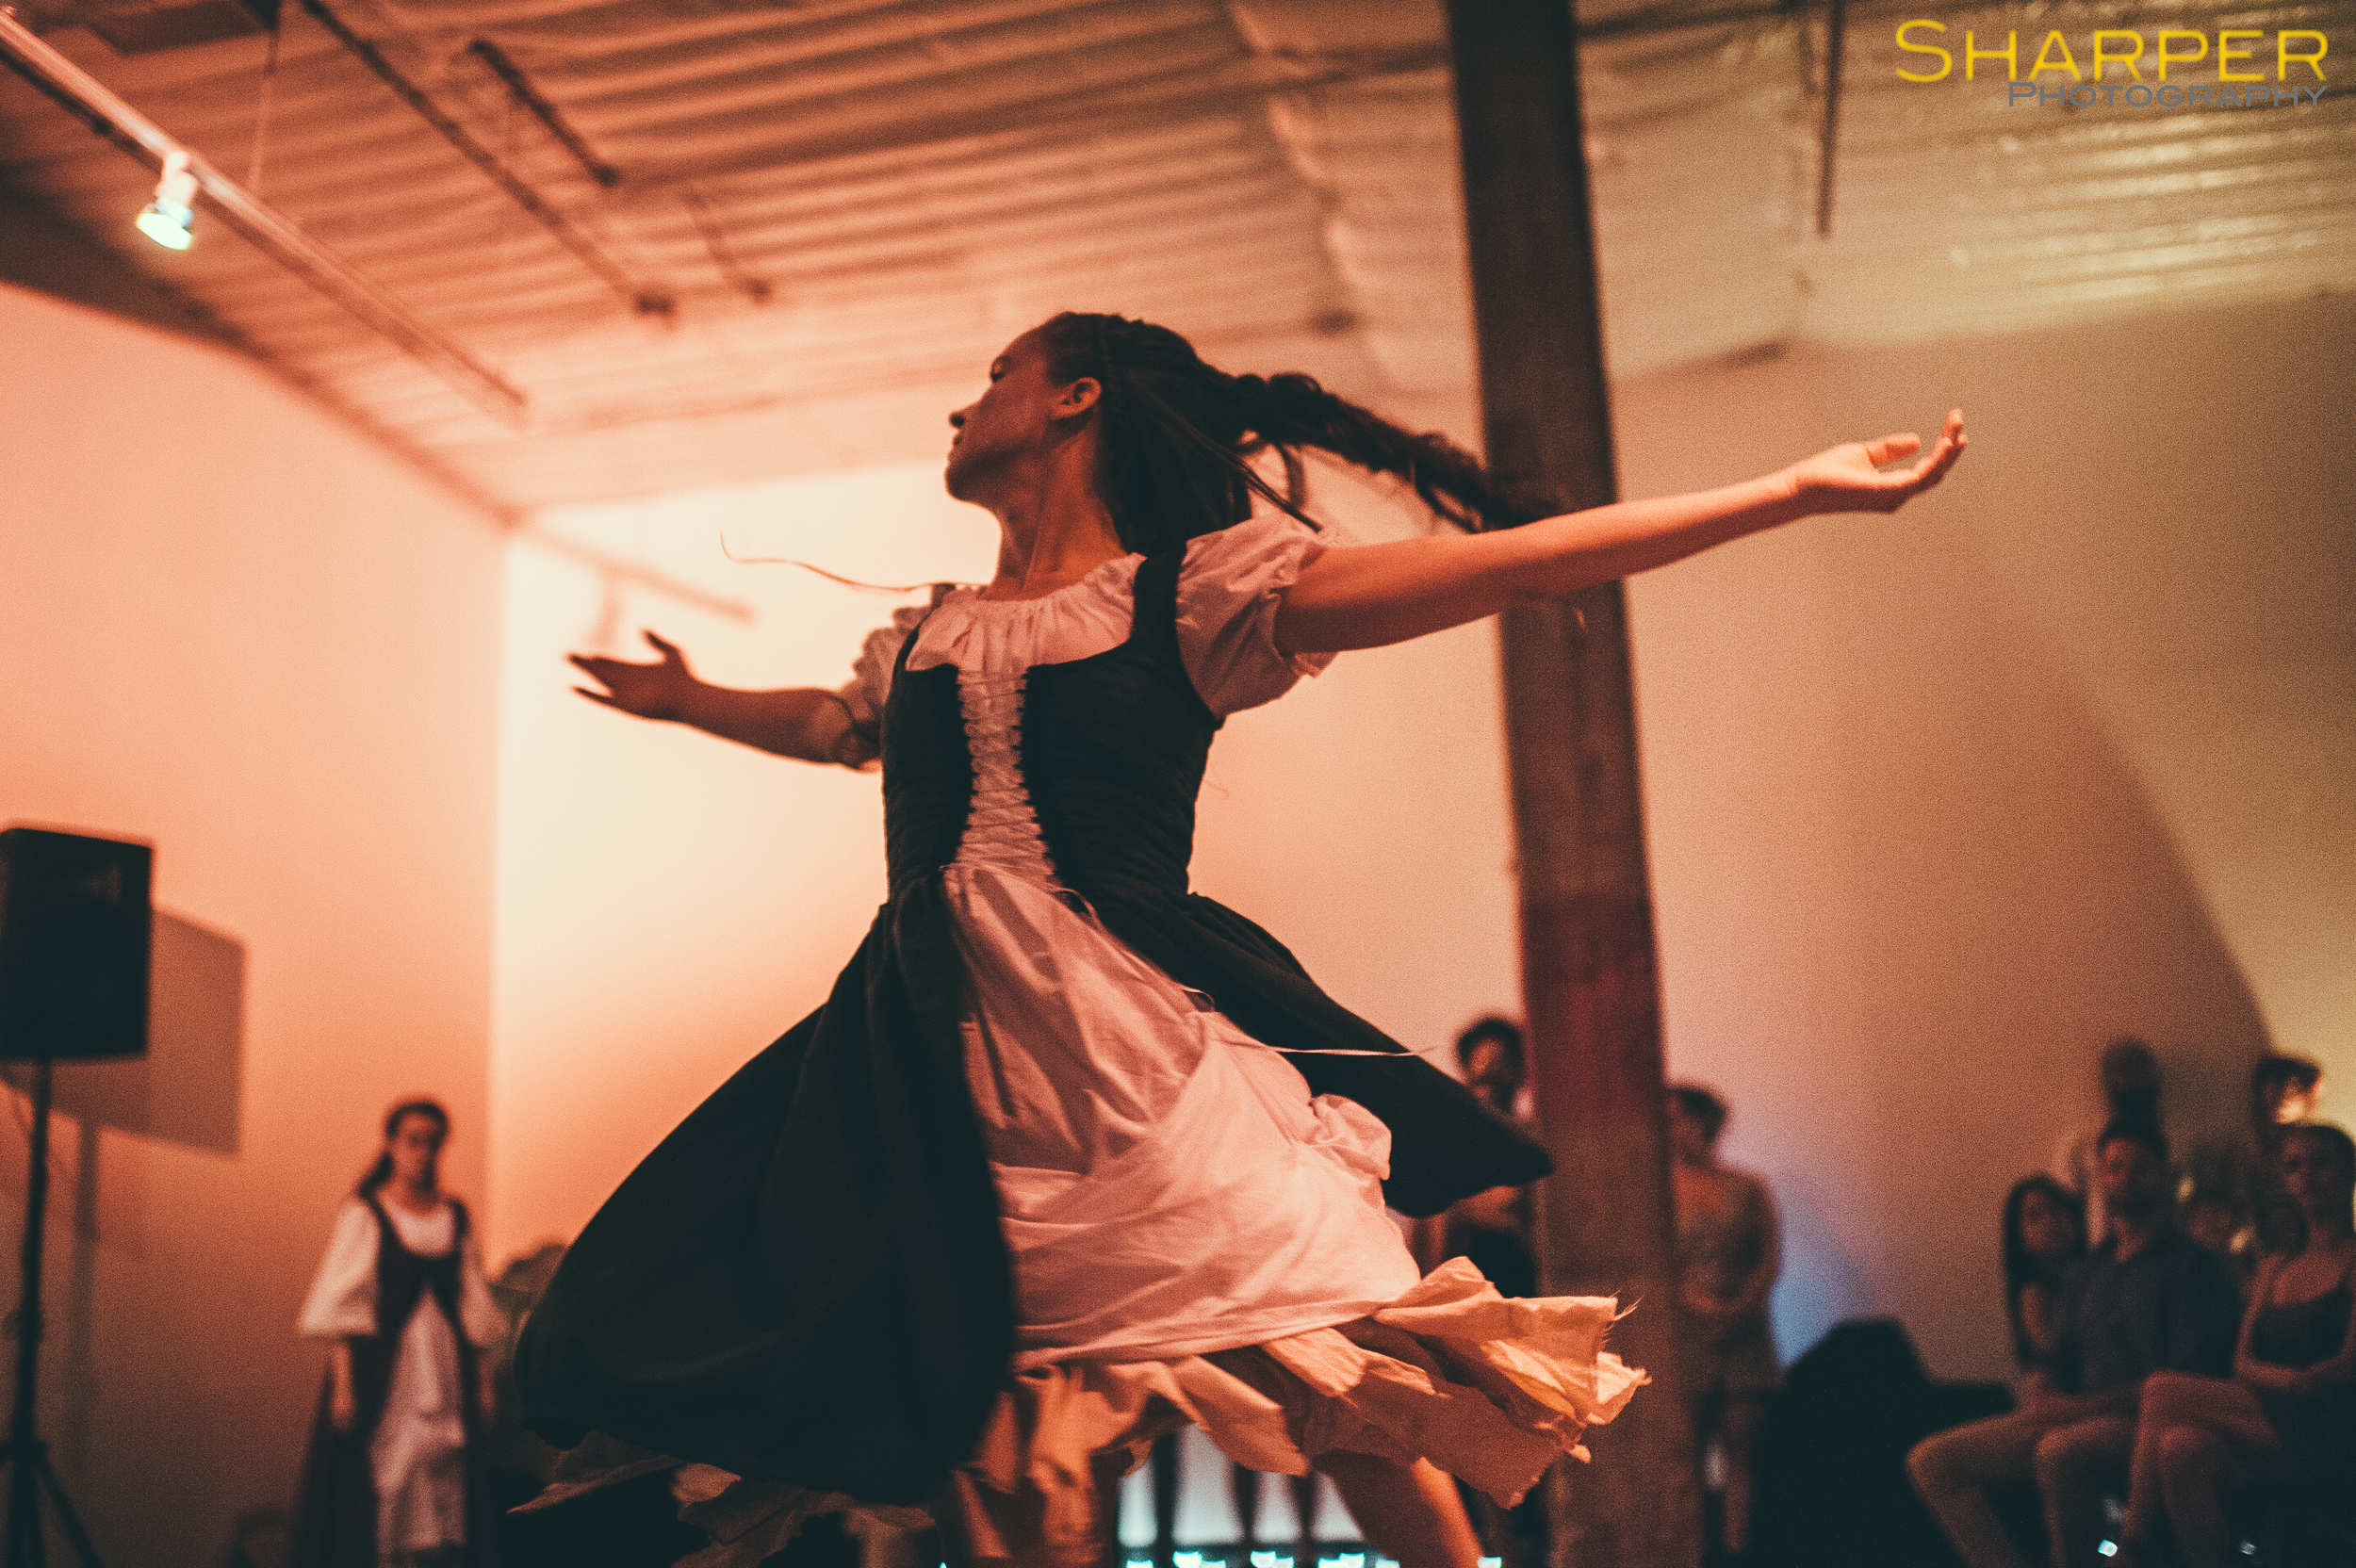 Dancer twirls in Austin theater event with Shakespeare theme